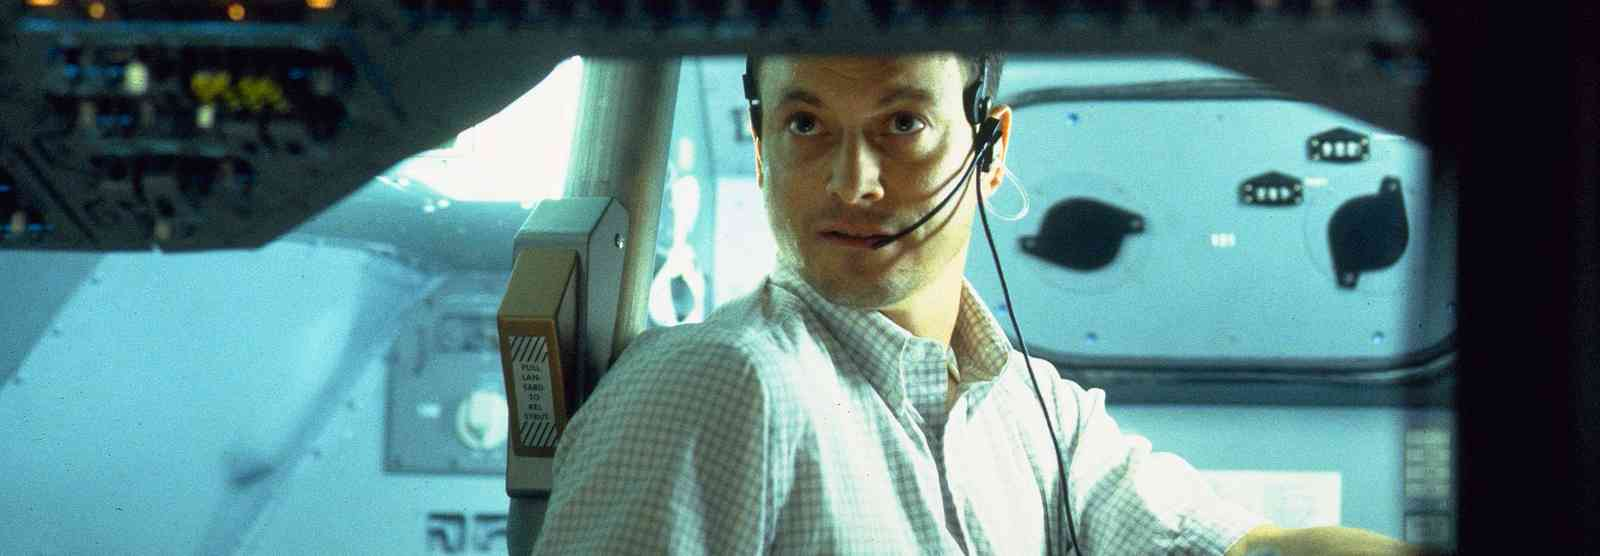 Gary Sinise as Ken Mattingly in Apollo 13